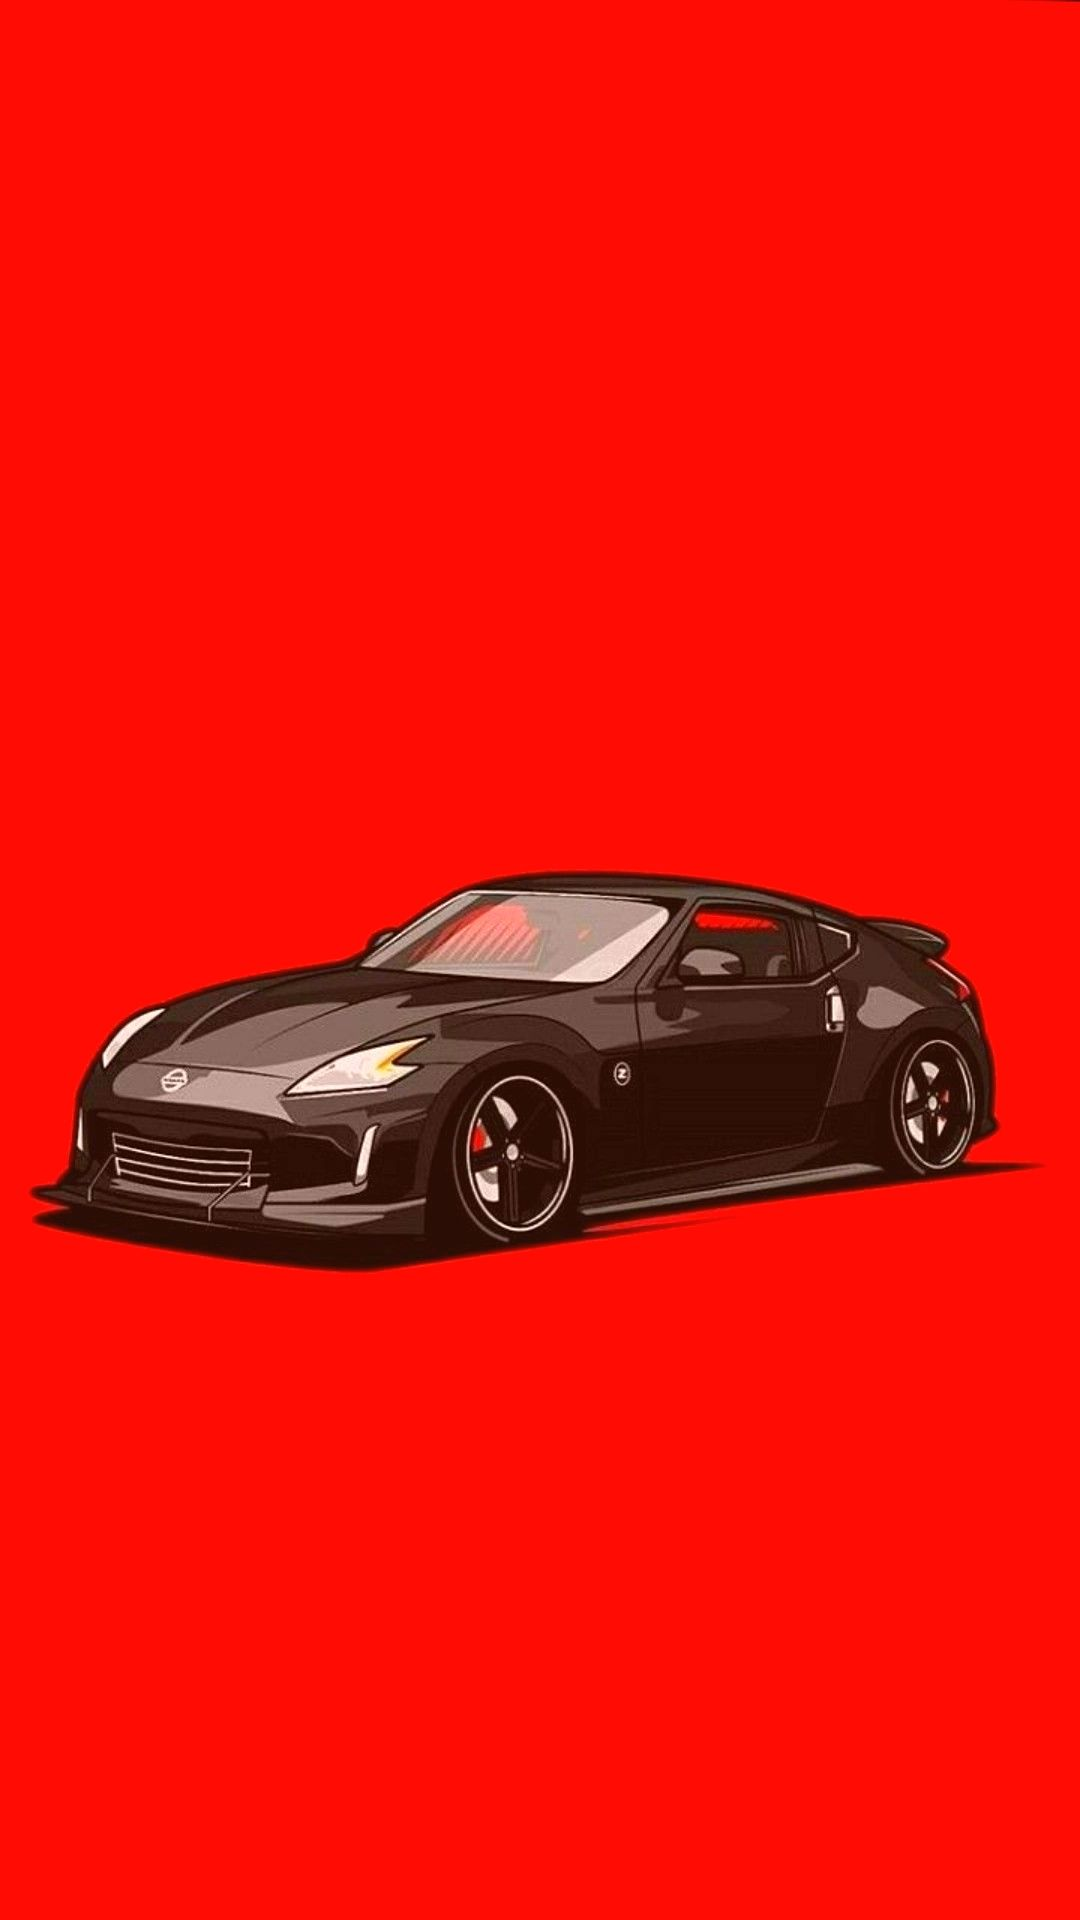 Super cars hd wallpaper video backgrounds offered by usedelight.com Red Jdm Wallpapers Wallpaper Cave